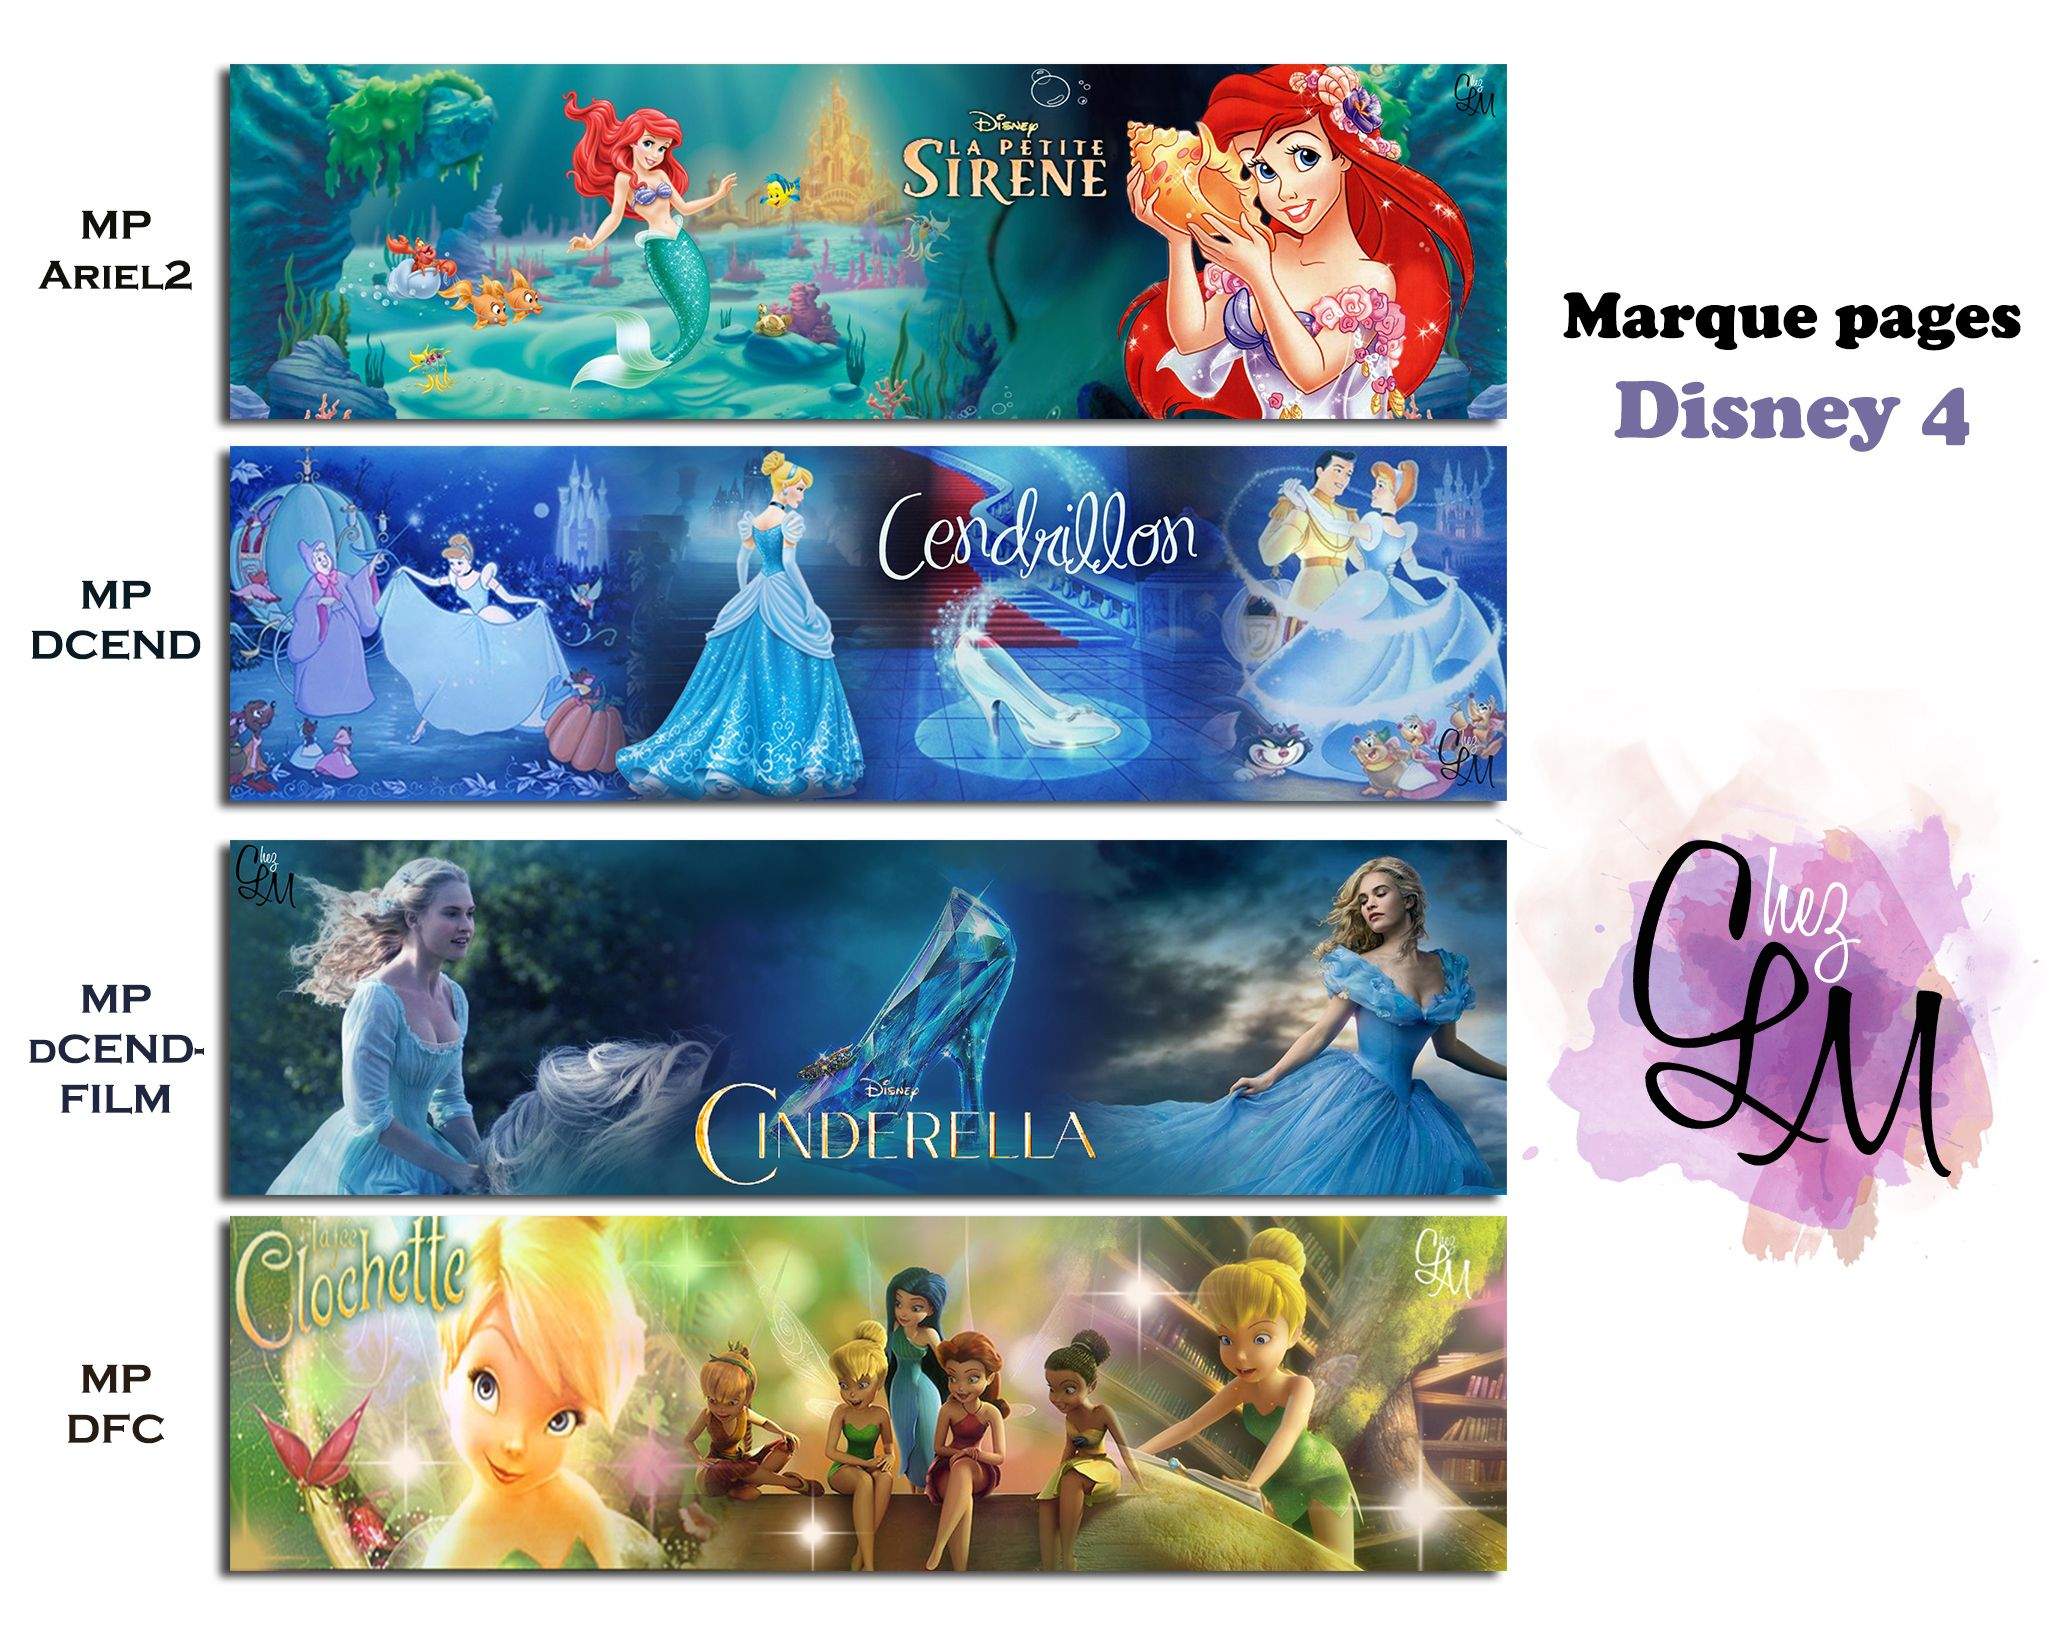 marque pages princesses disney 4 ariel2 dcend dcendfilm dfc princesse de disney. Black Bedroom Furniture Sets. Home Design Ideas